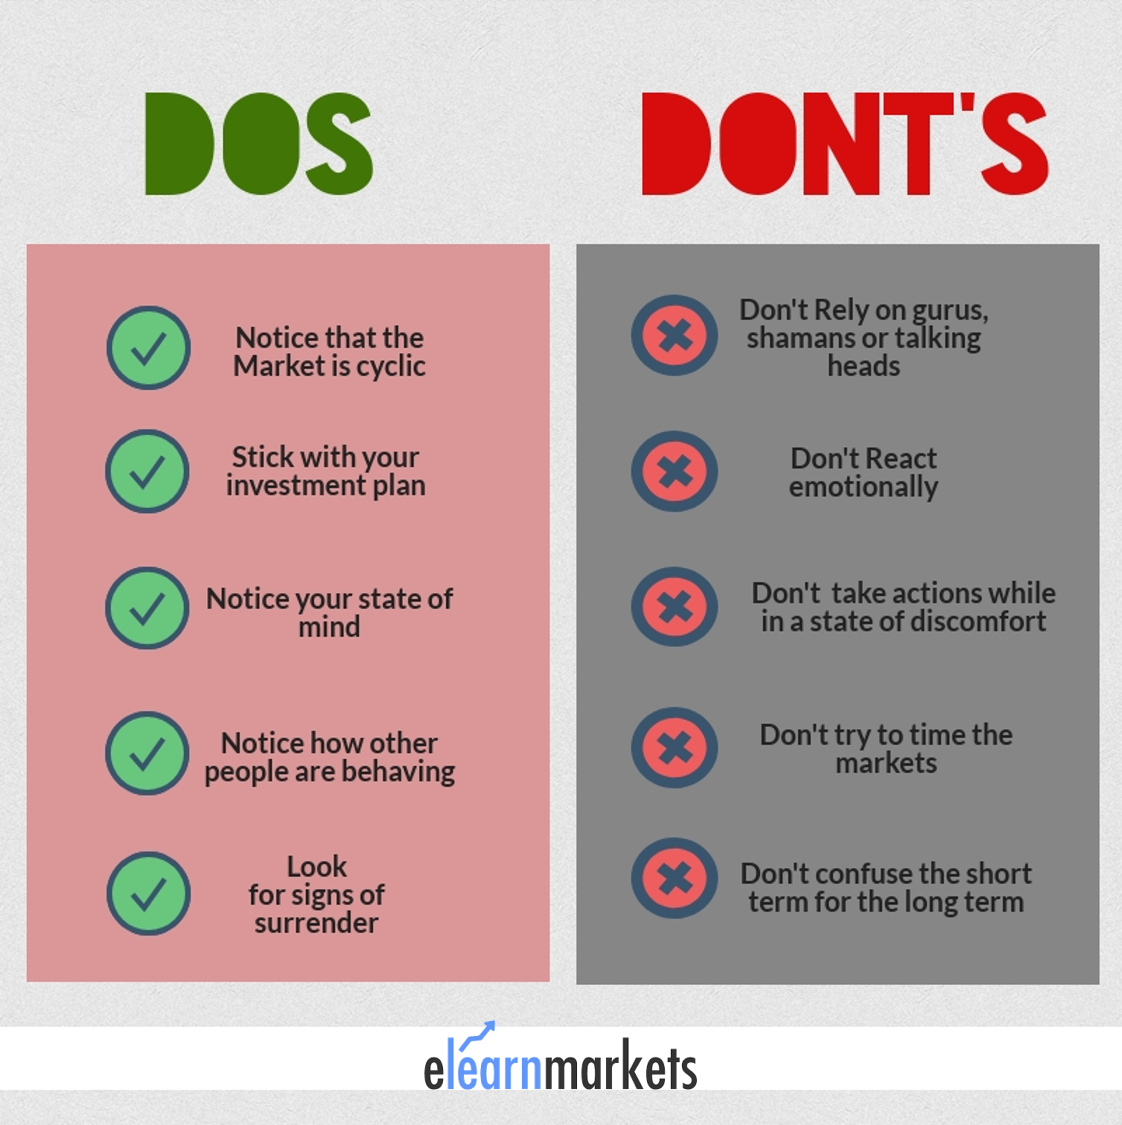 dos and donts of stock market